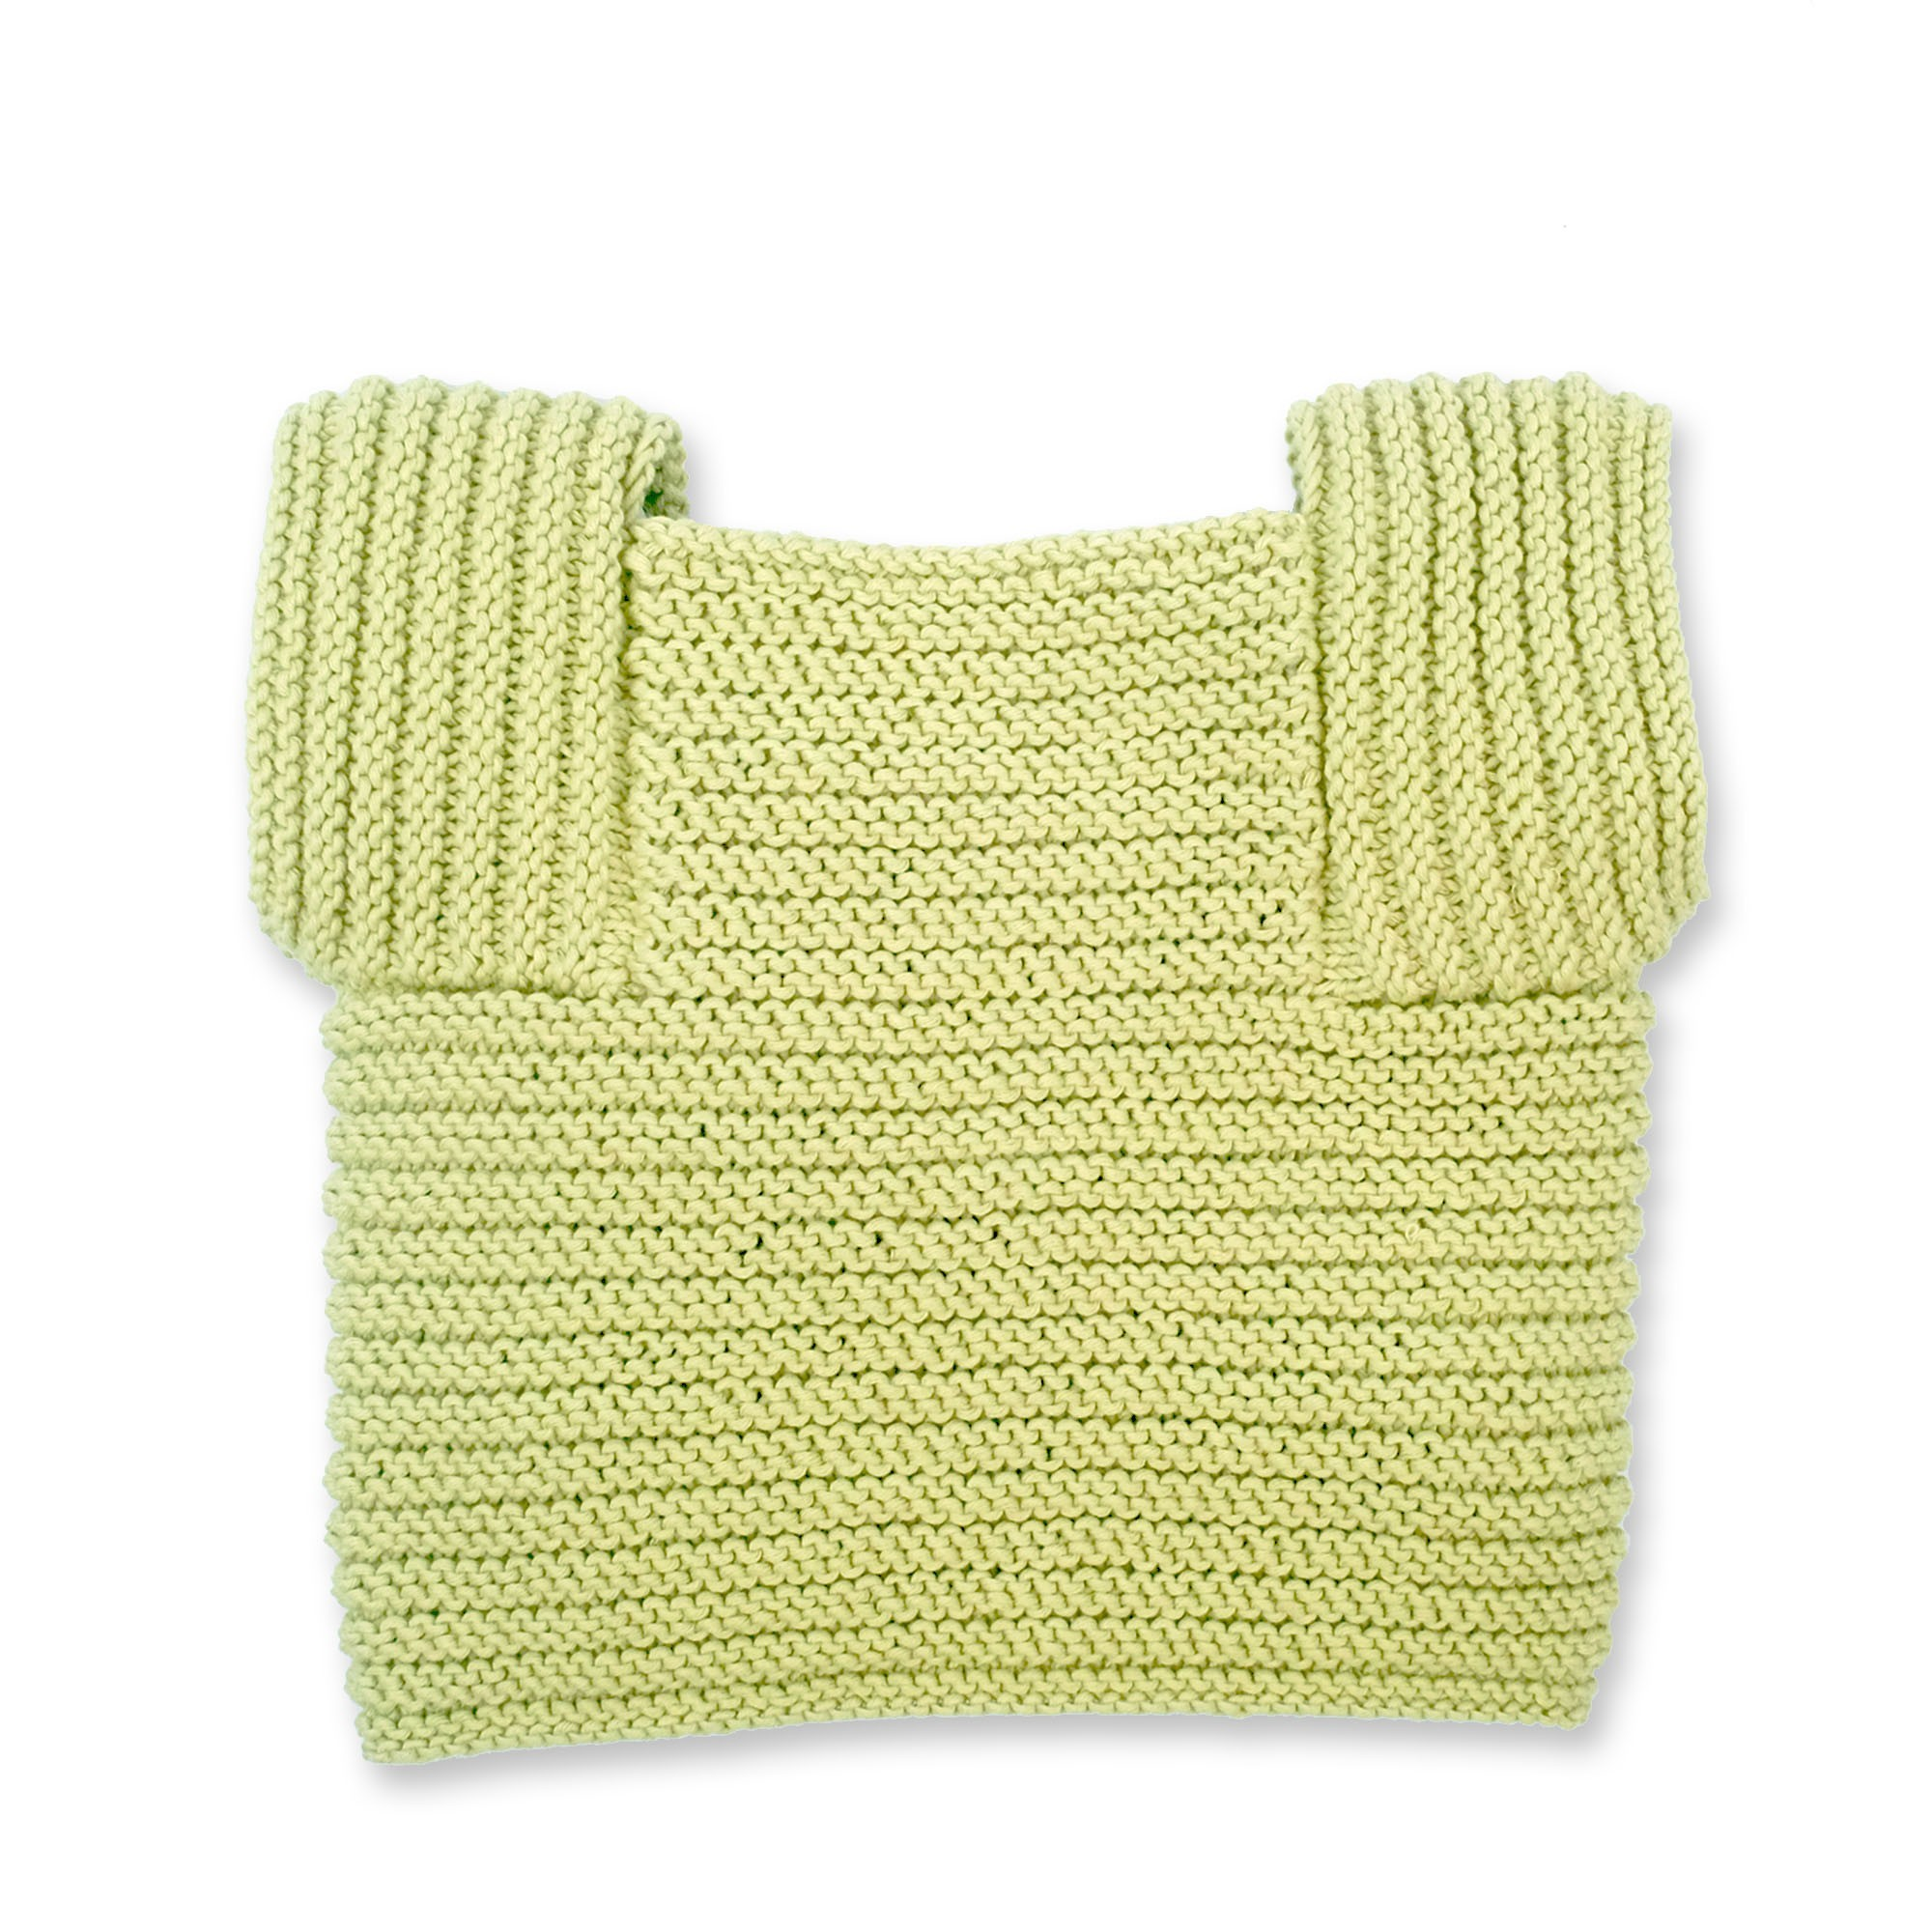 Edgar Cardigan for baby - pistachio green color - the back